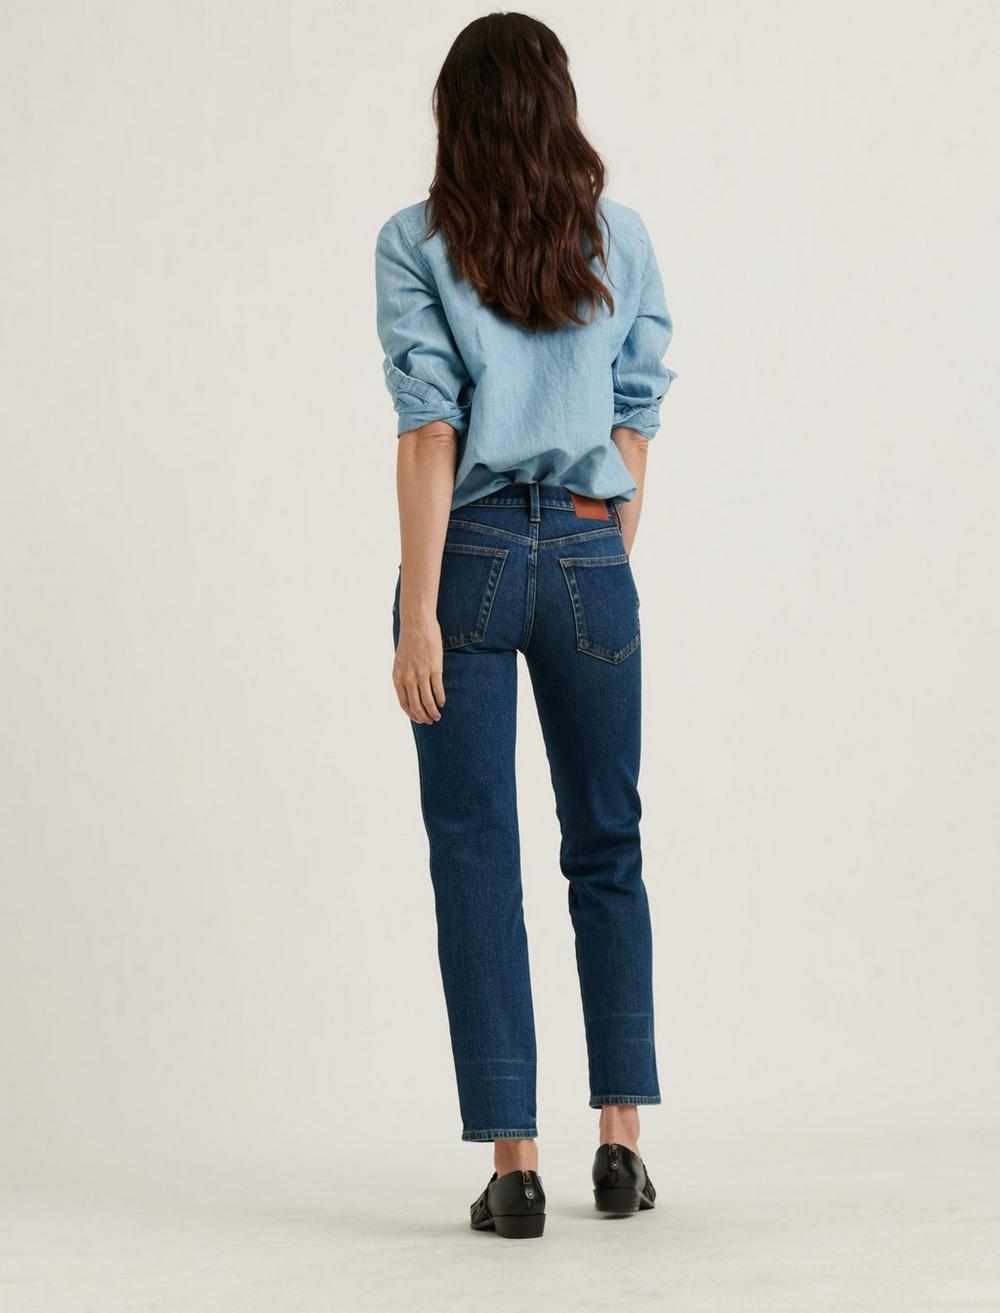 MID RISE AUTHENTIC STRAIGHT JEAN, image 3